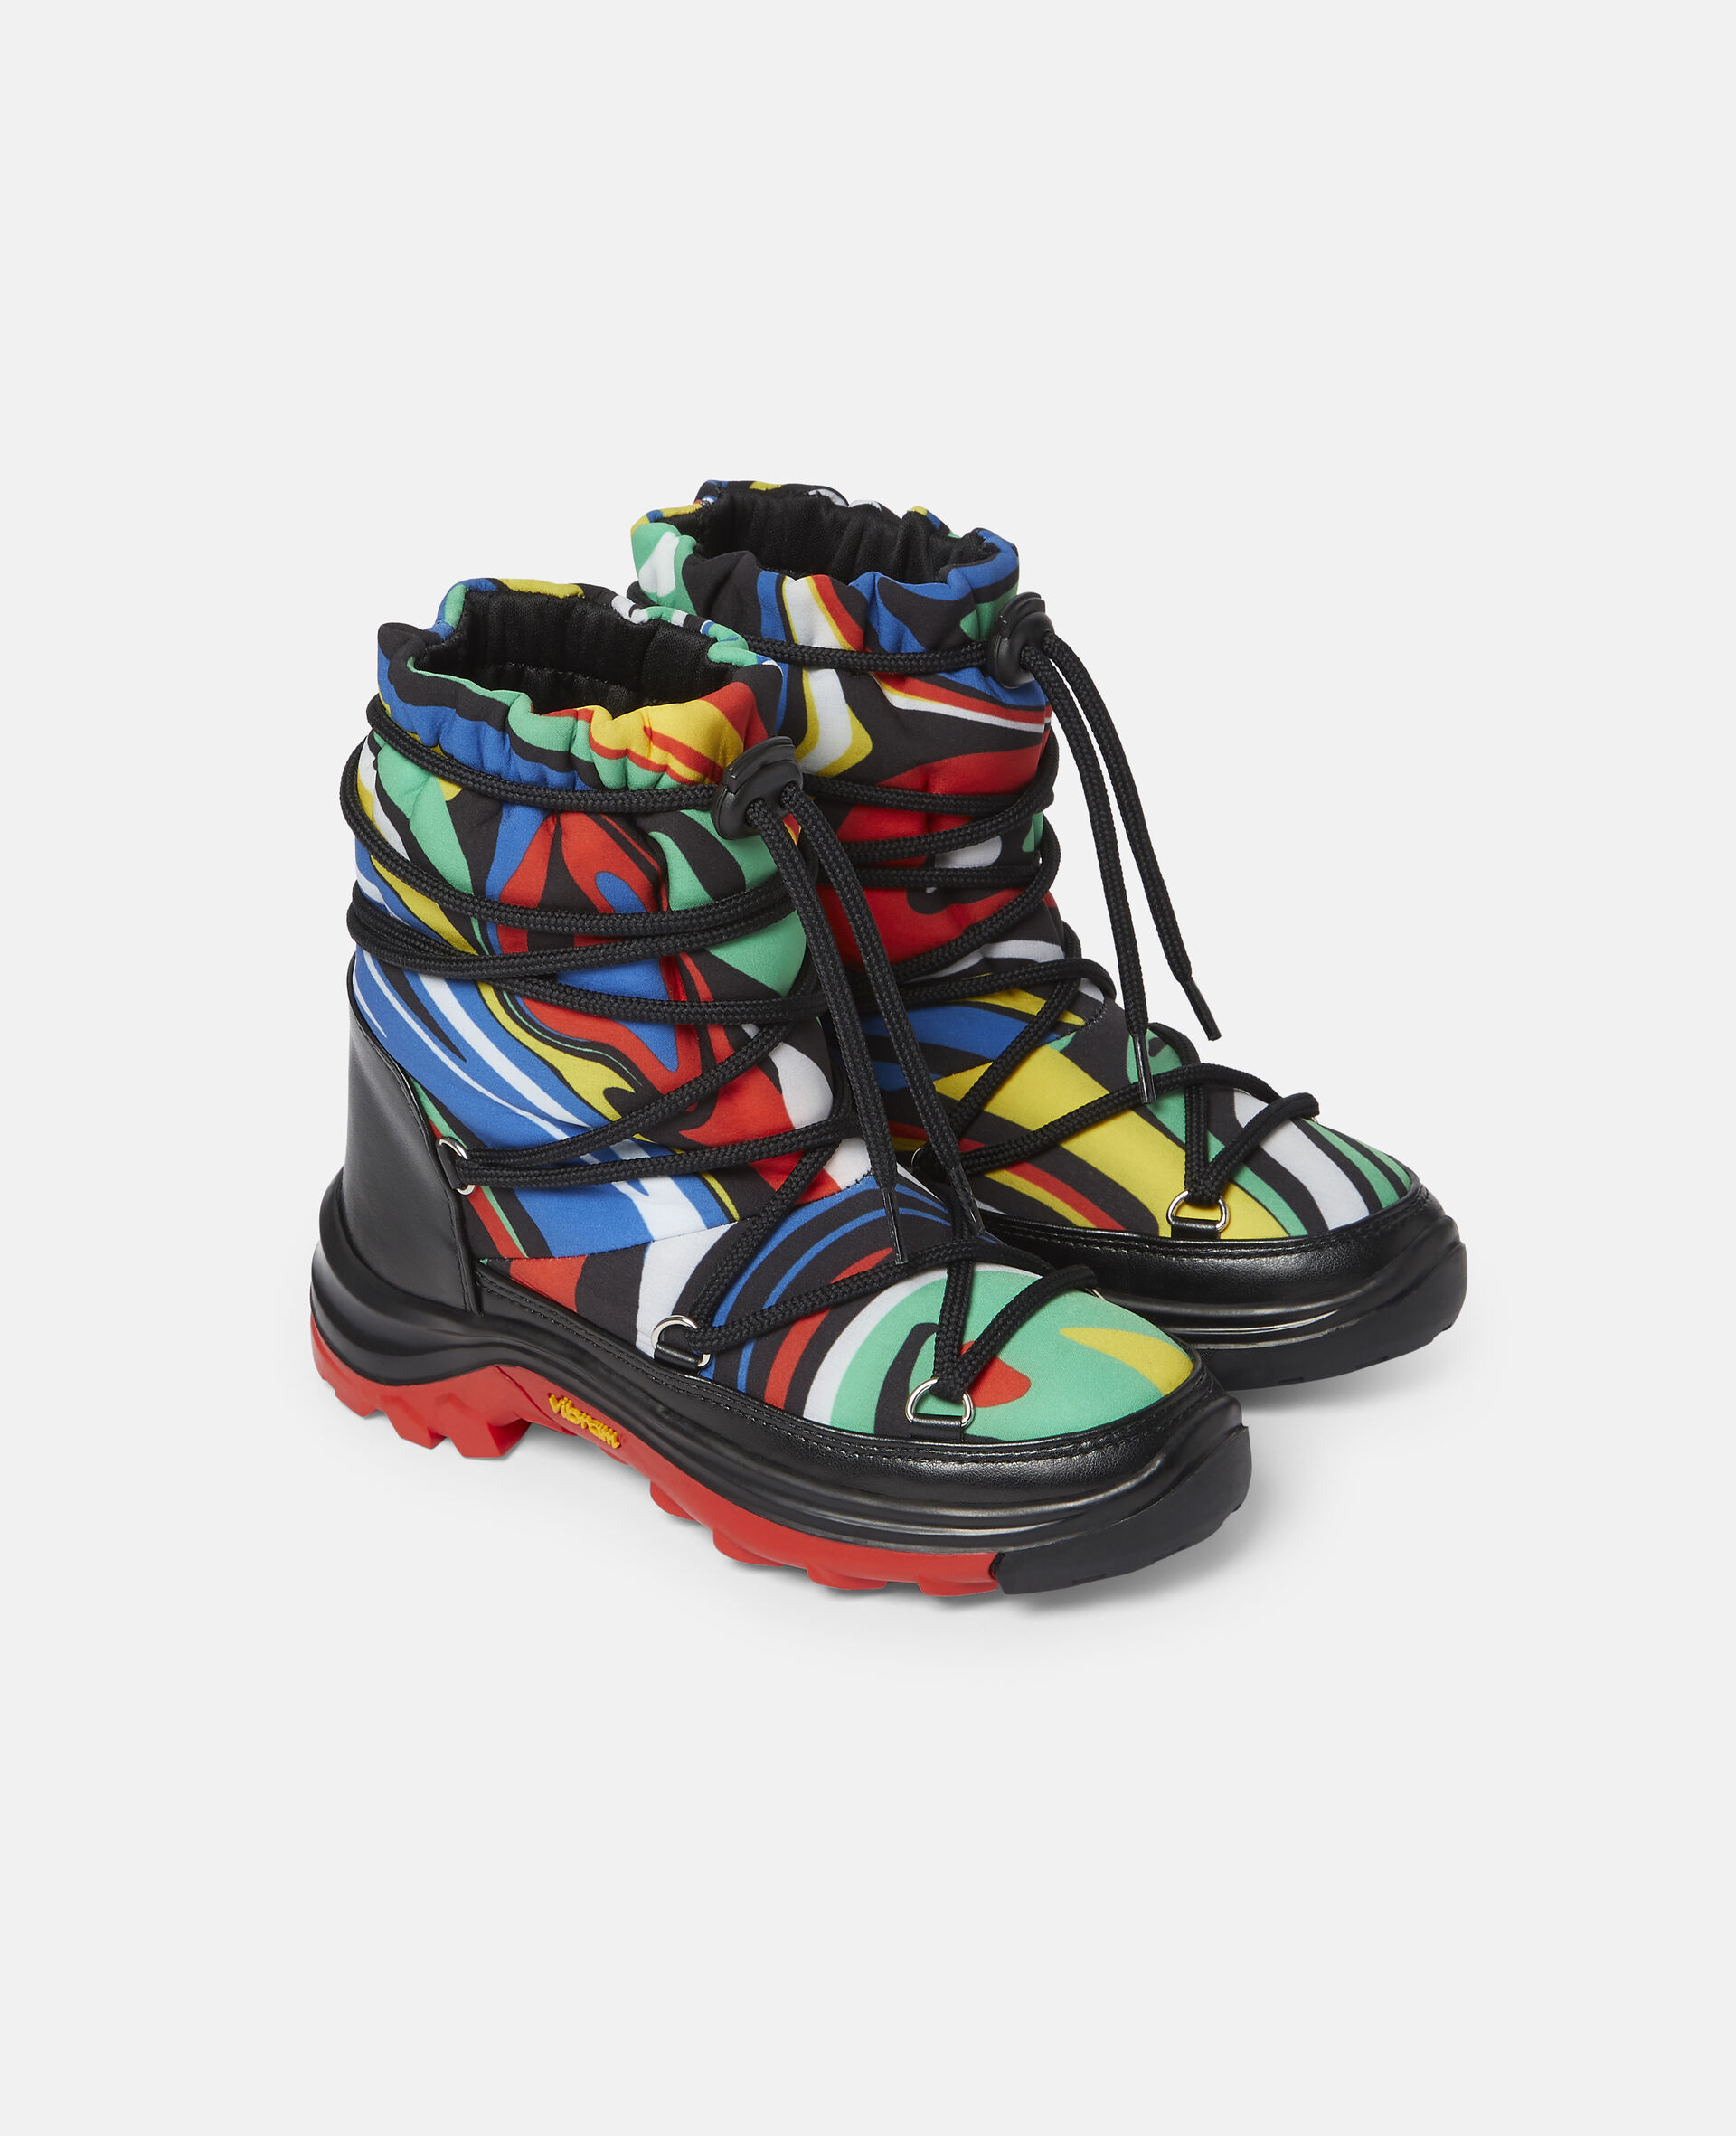 Marble Ski Boots-Multicolour-large image number 3